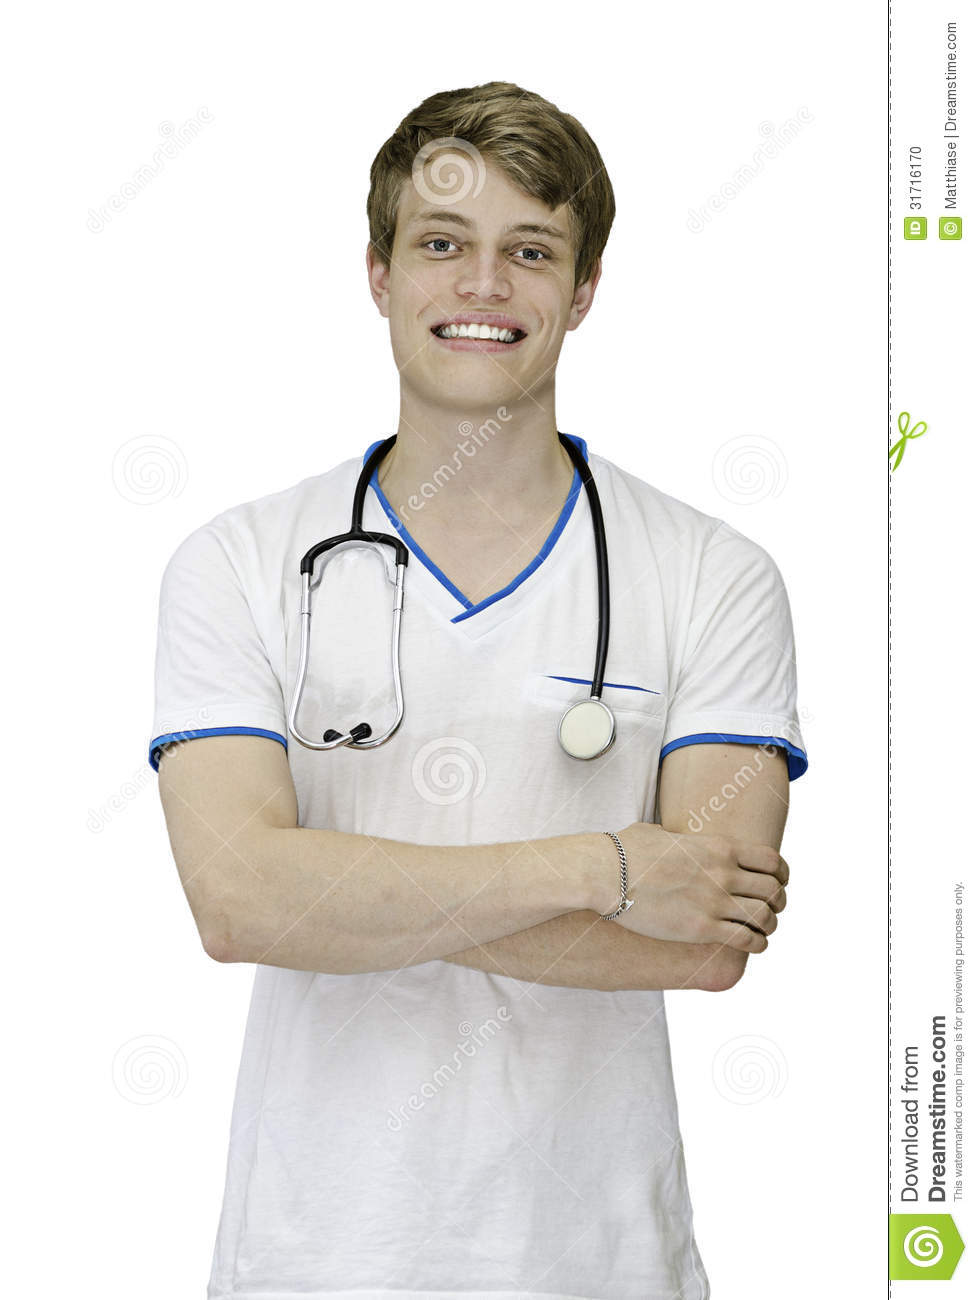 Male nurse or doctor